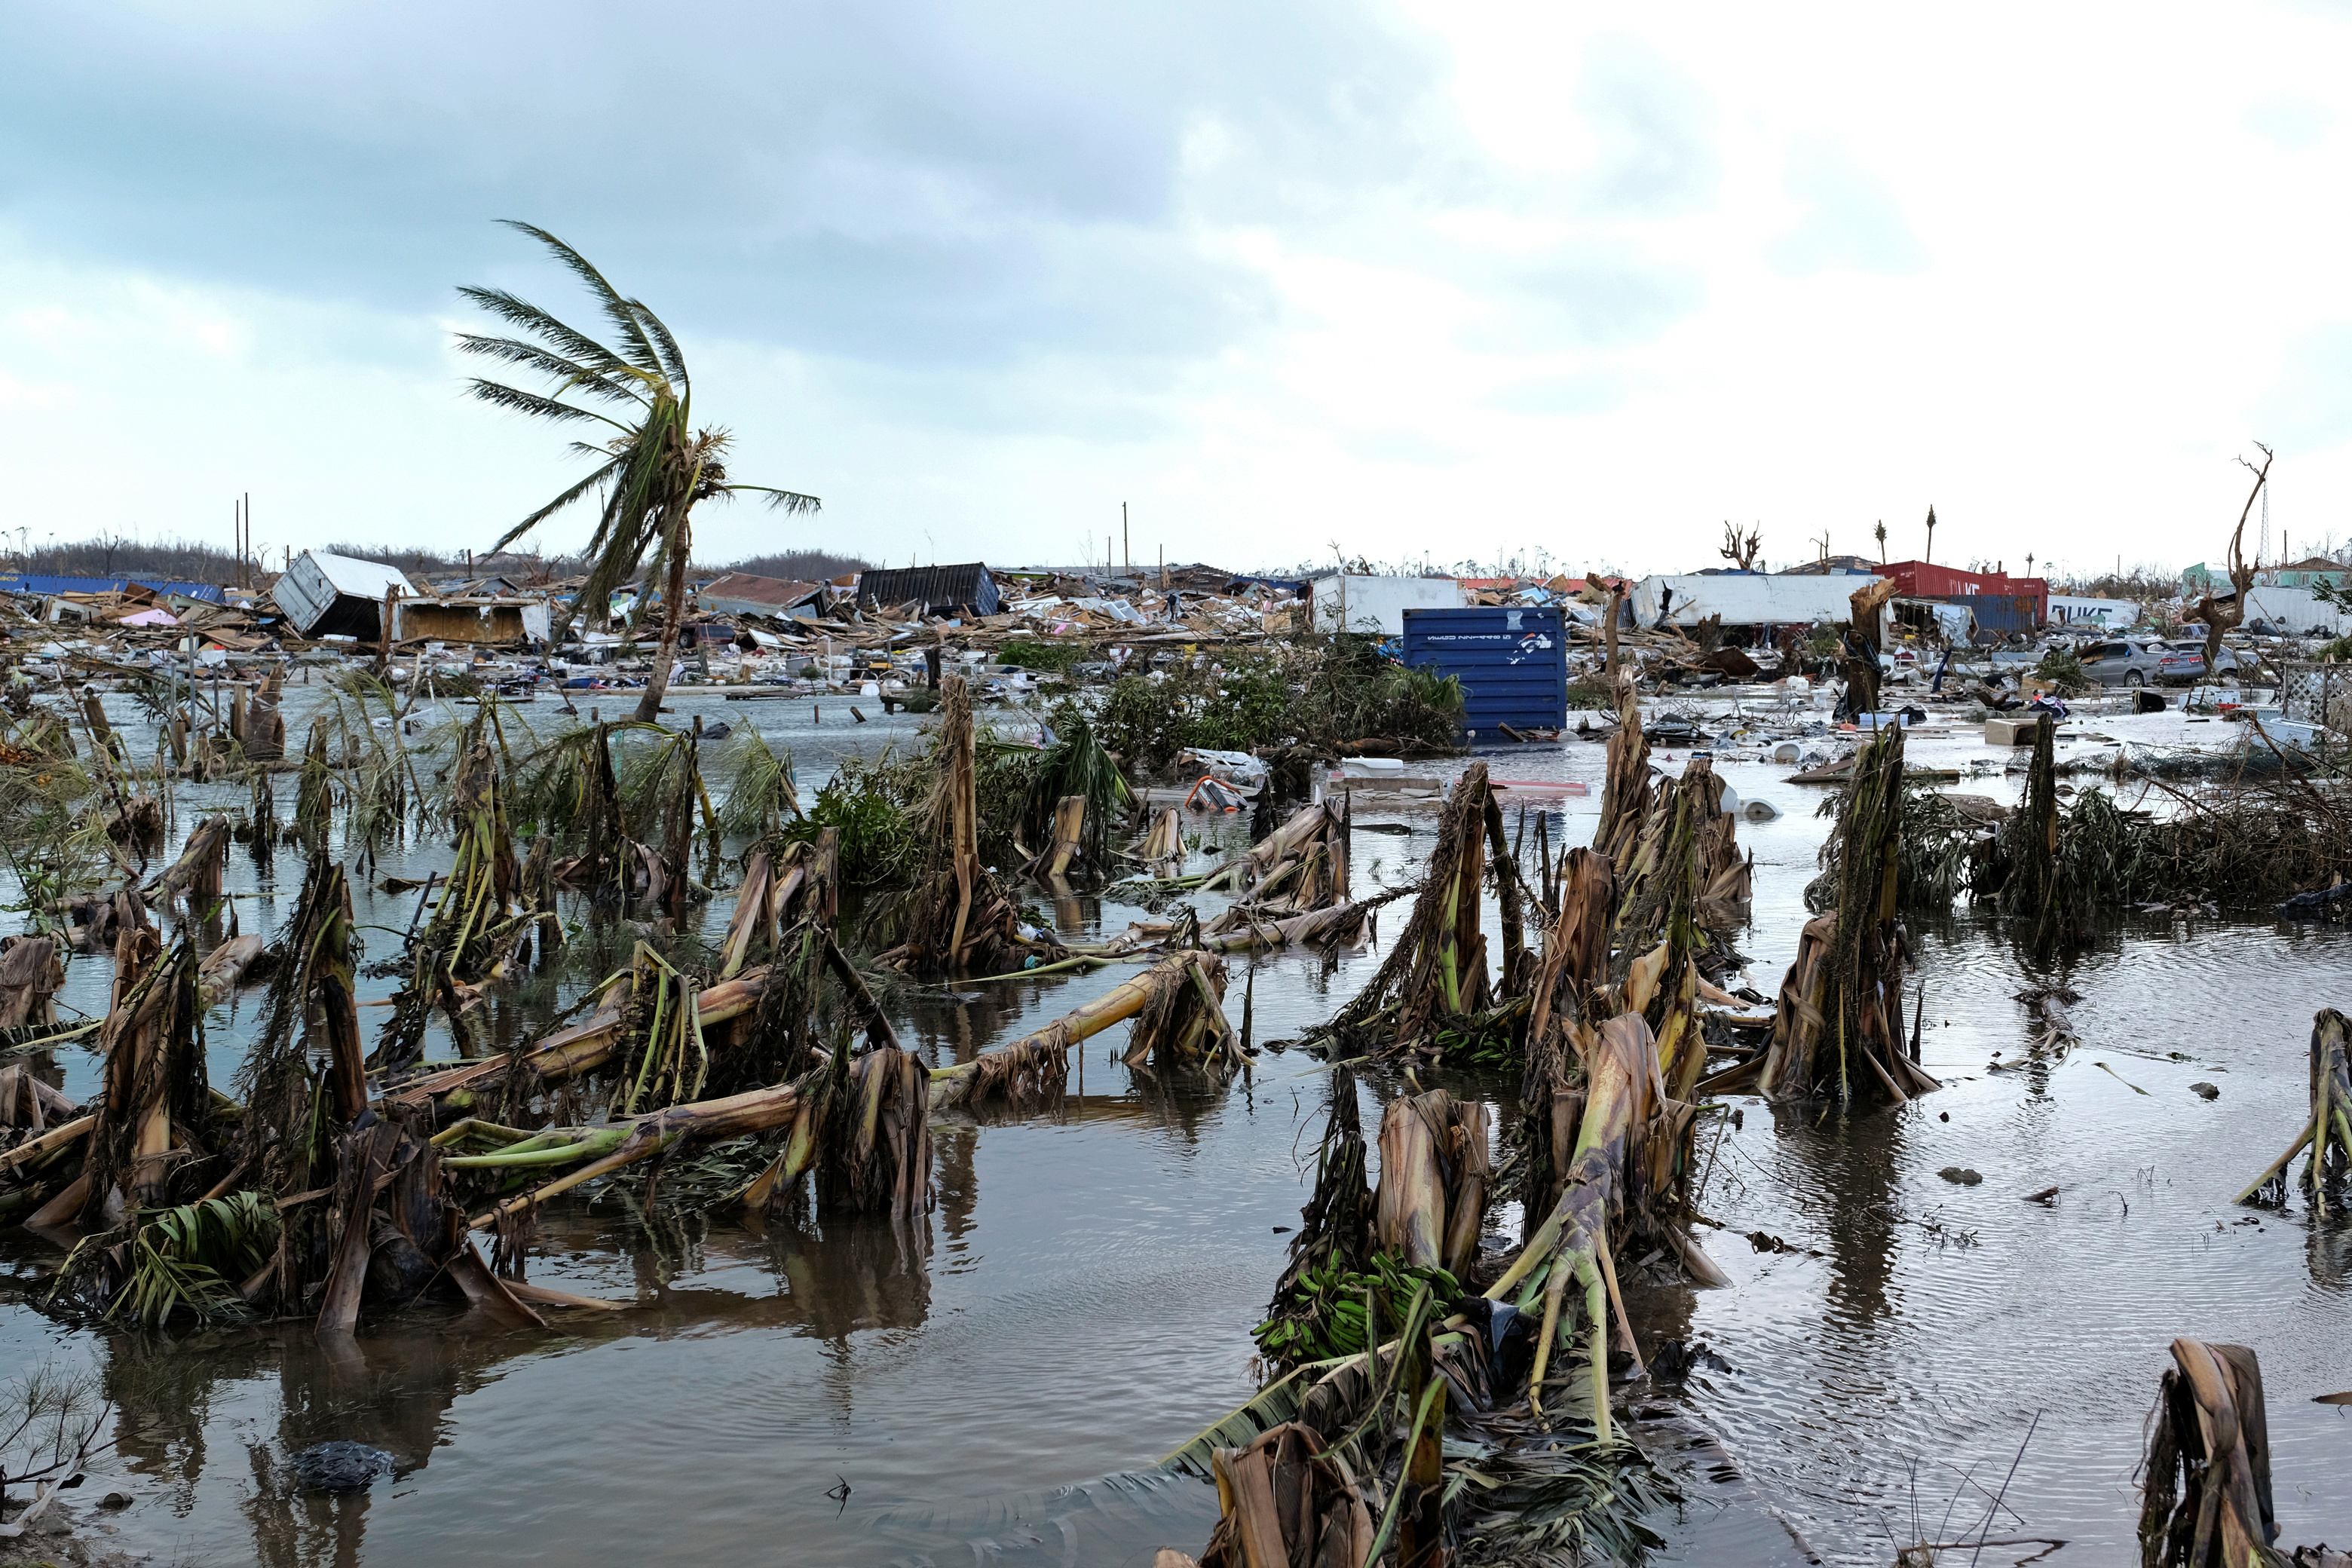 Damage in the aftermath of Hurricane Dorian on the Great Abaco island town of Marsh Harbour, Bahamas, September 4, 2019. (REUTERS/Dante Carrer)